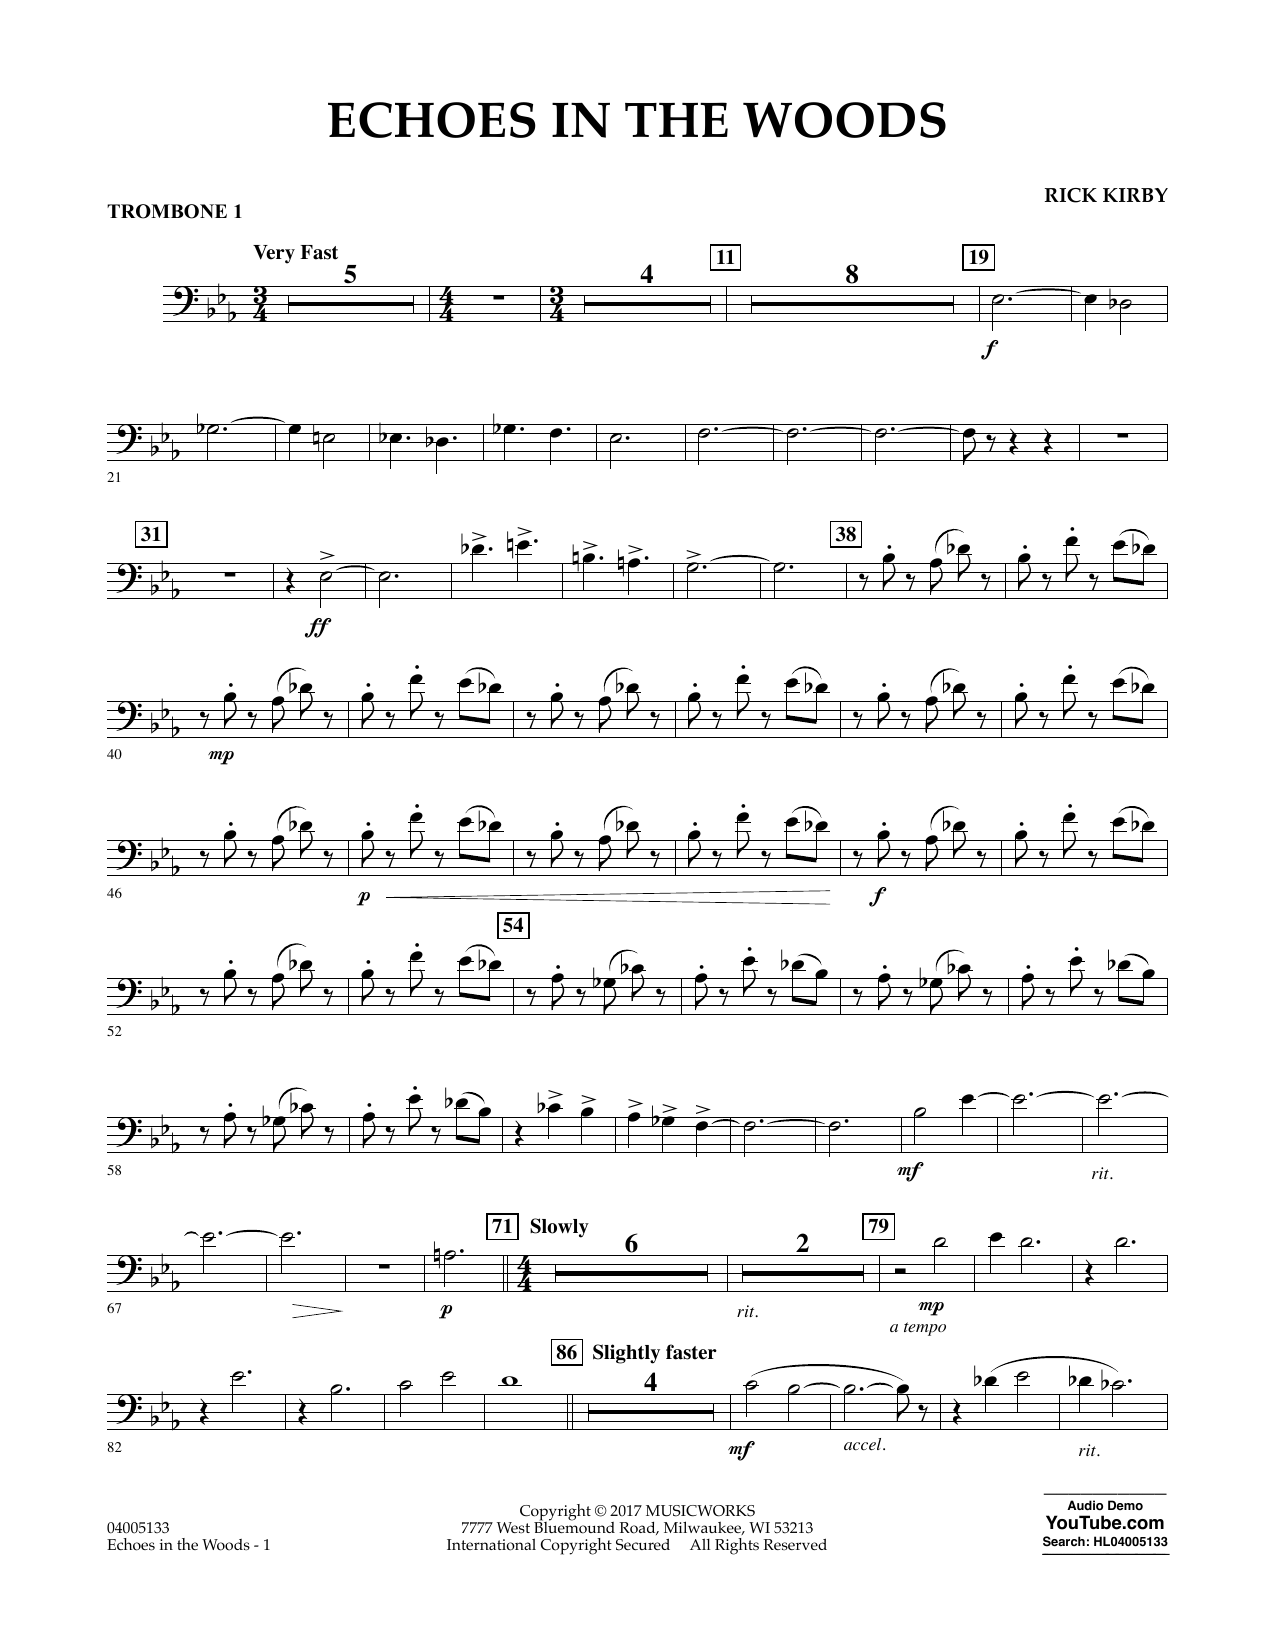 Rick Kirby Echoes in the Woods - Trombone 1 sheet music notes and chords. Download Printable PDF.